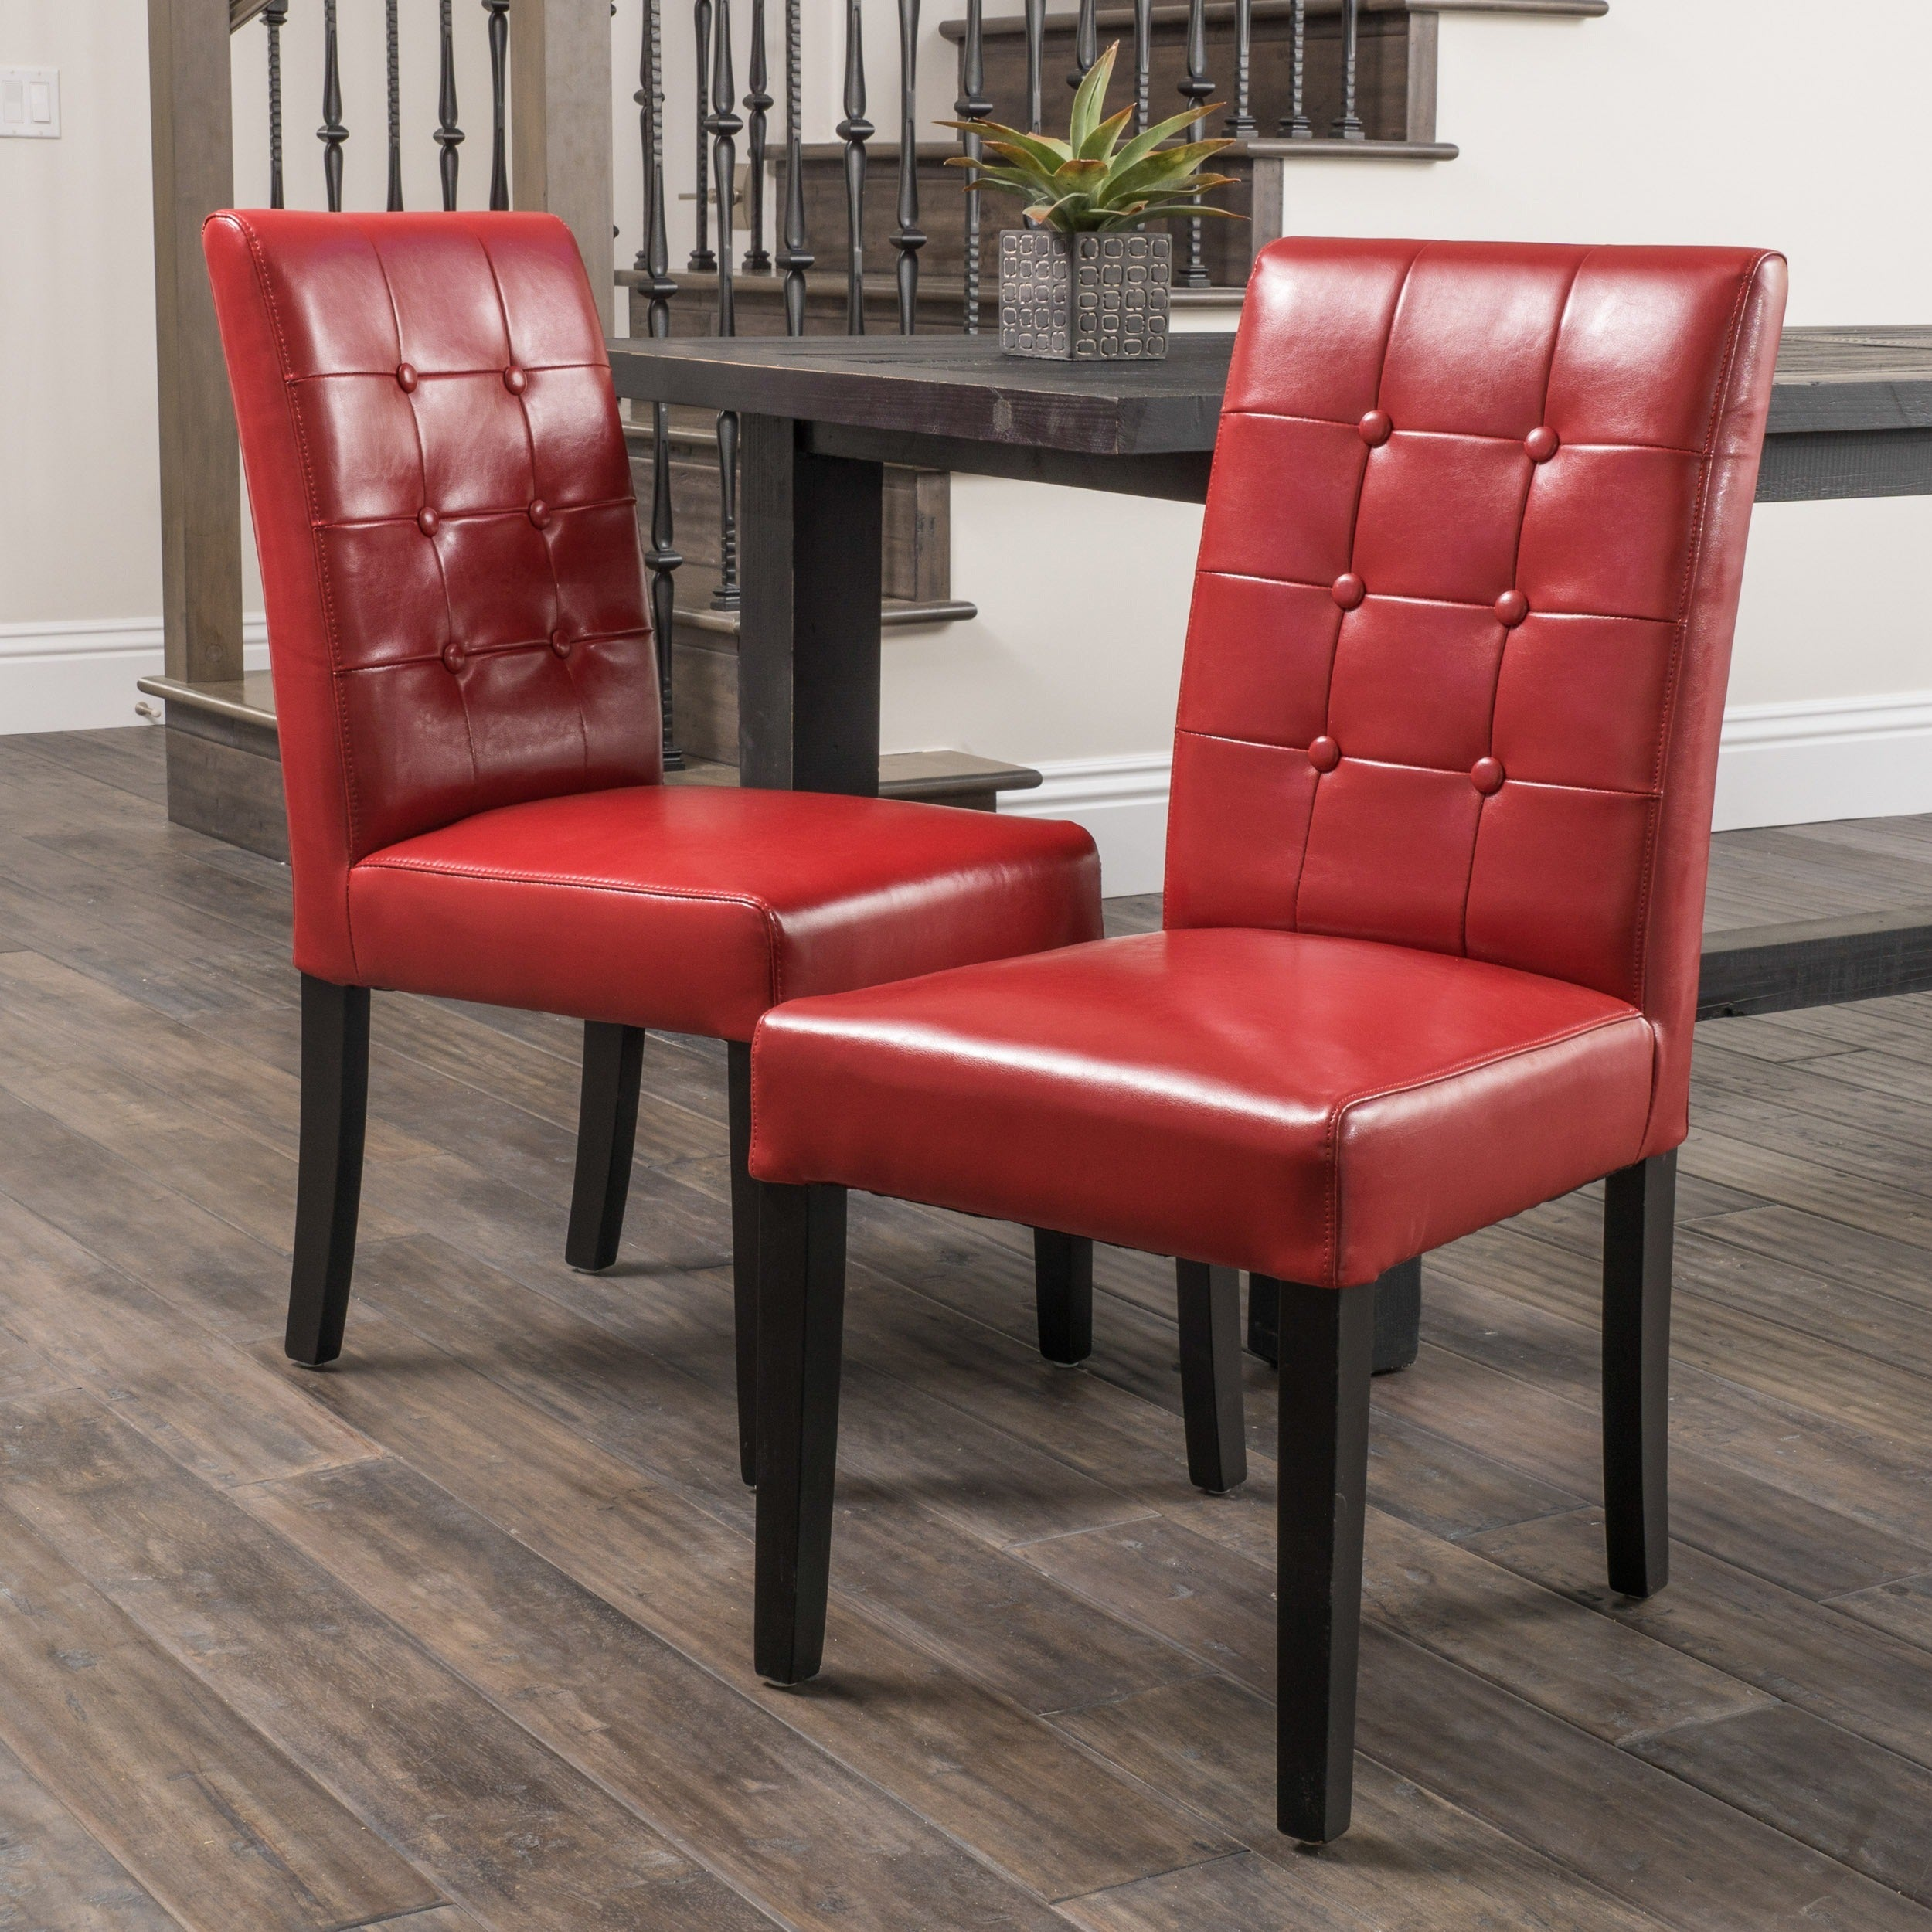 Roland Red Bonded Leather Dining Chairs by Christopher Kn...